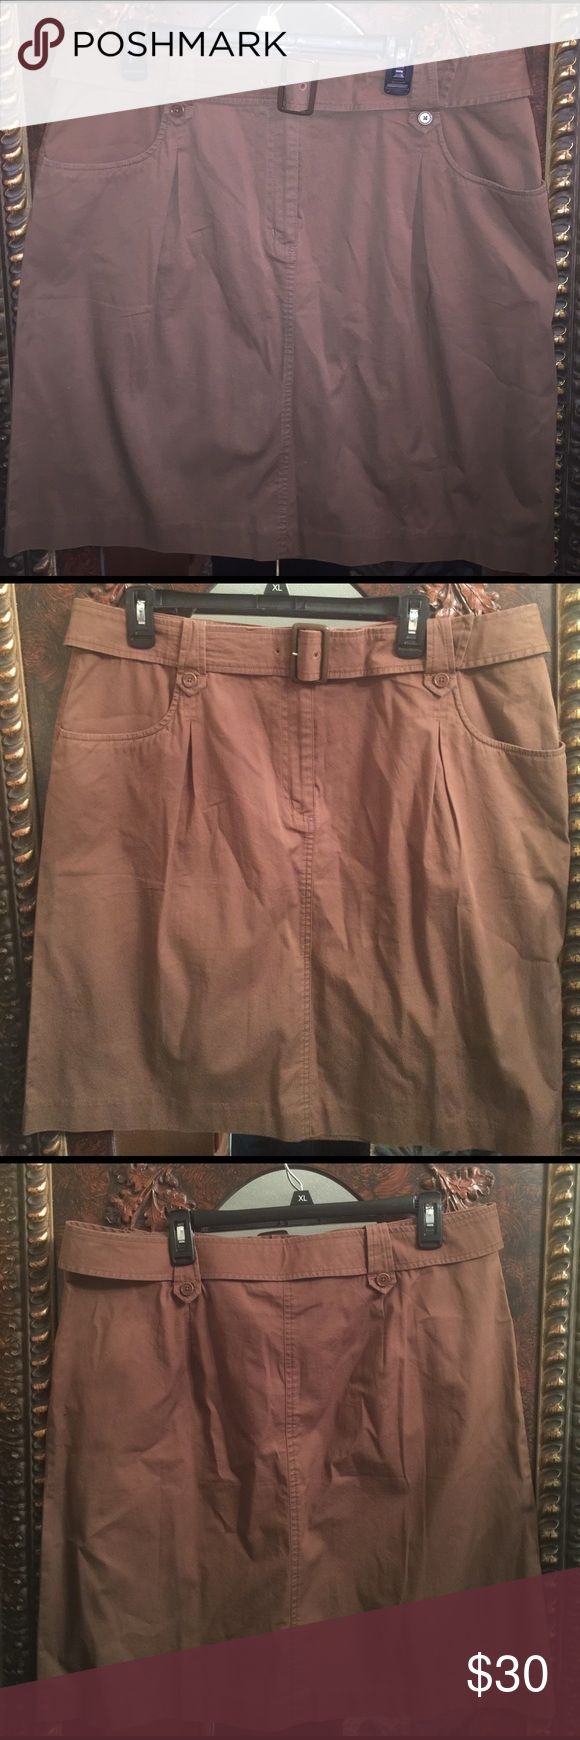 Brown Cotton Stretch Skirt NWOT Super Cute !! 96% cotton 4 % spandex stretch skirt zipper front with fasteners and matching belt. Two front pockets. Talbots Skirts Midi